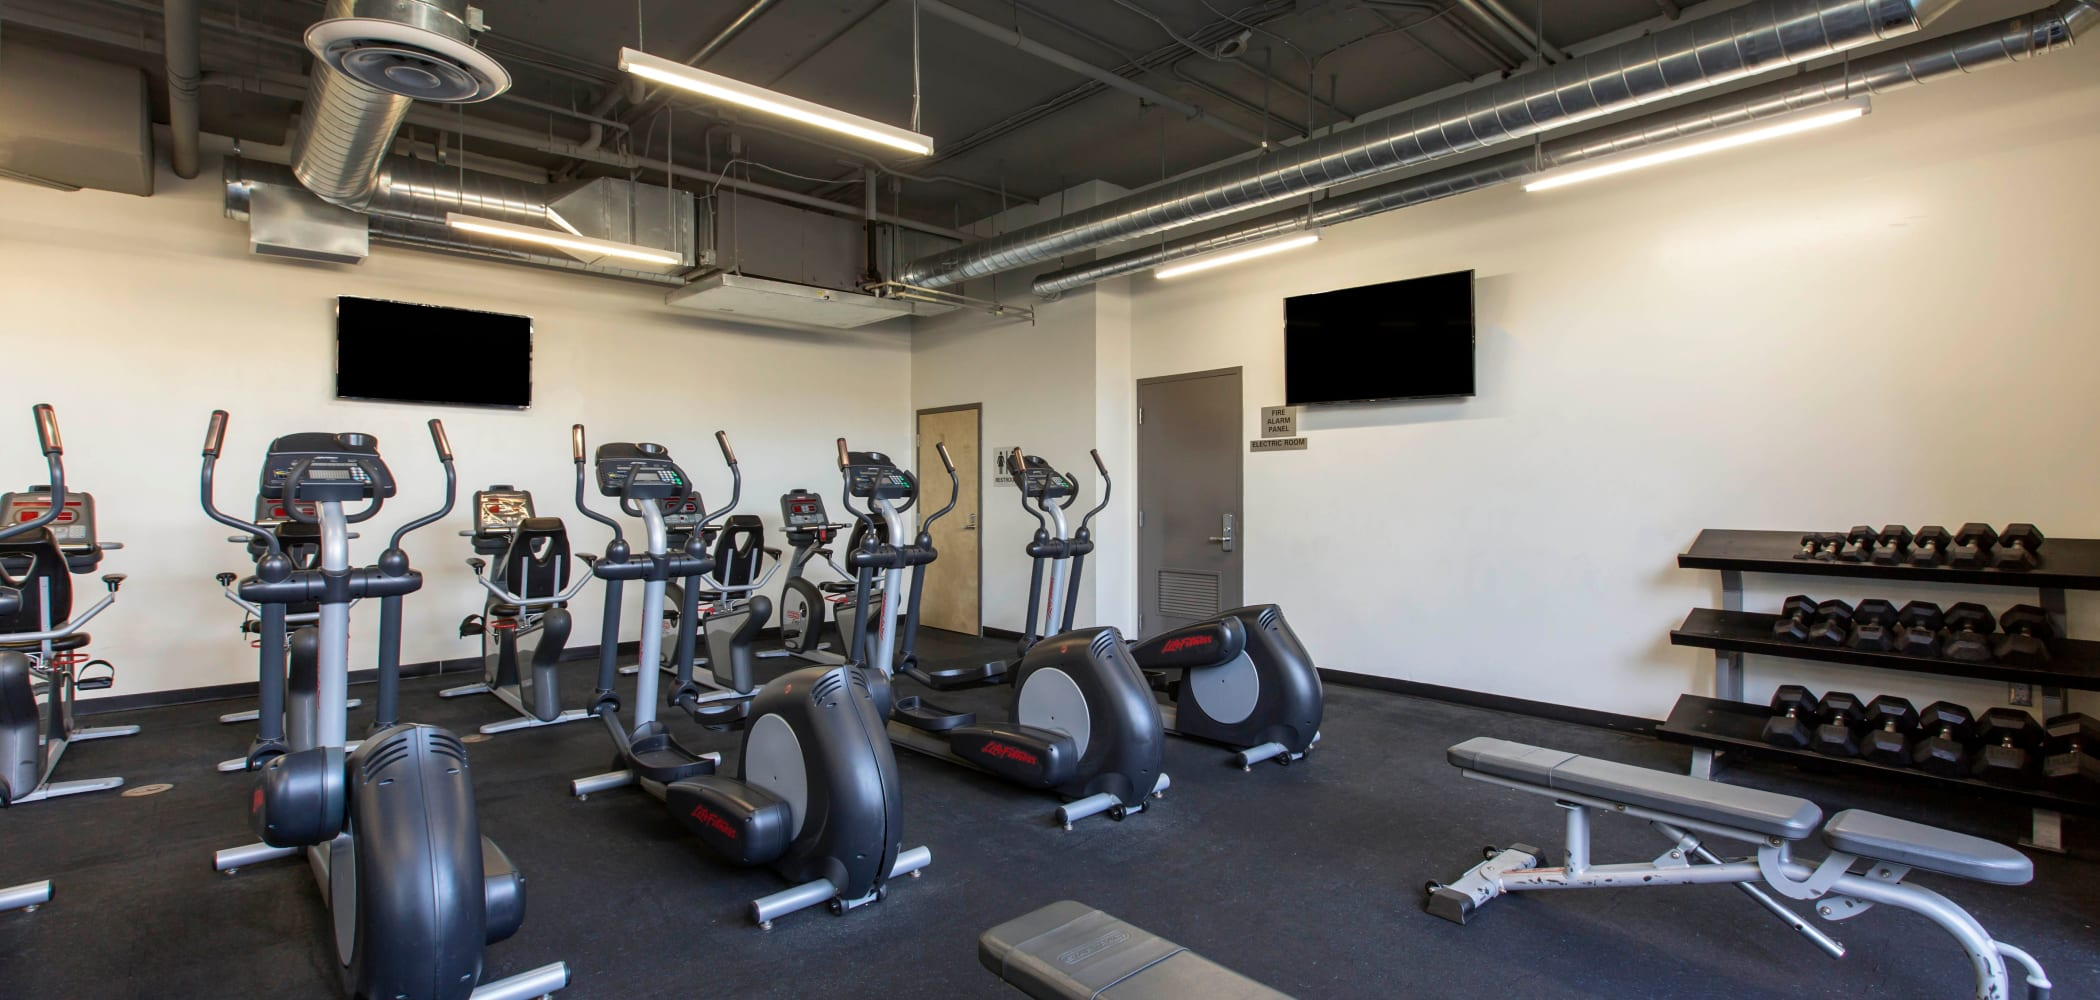 State-of-the-art fitness center at ICON in Isla Vista, California